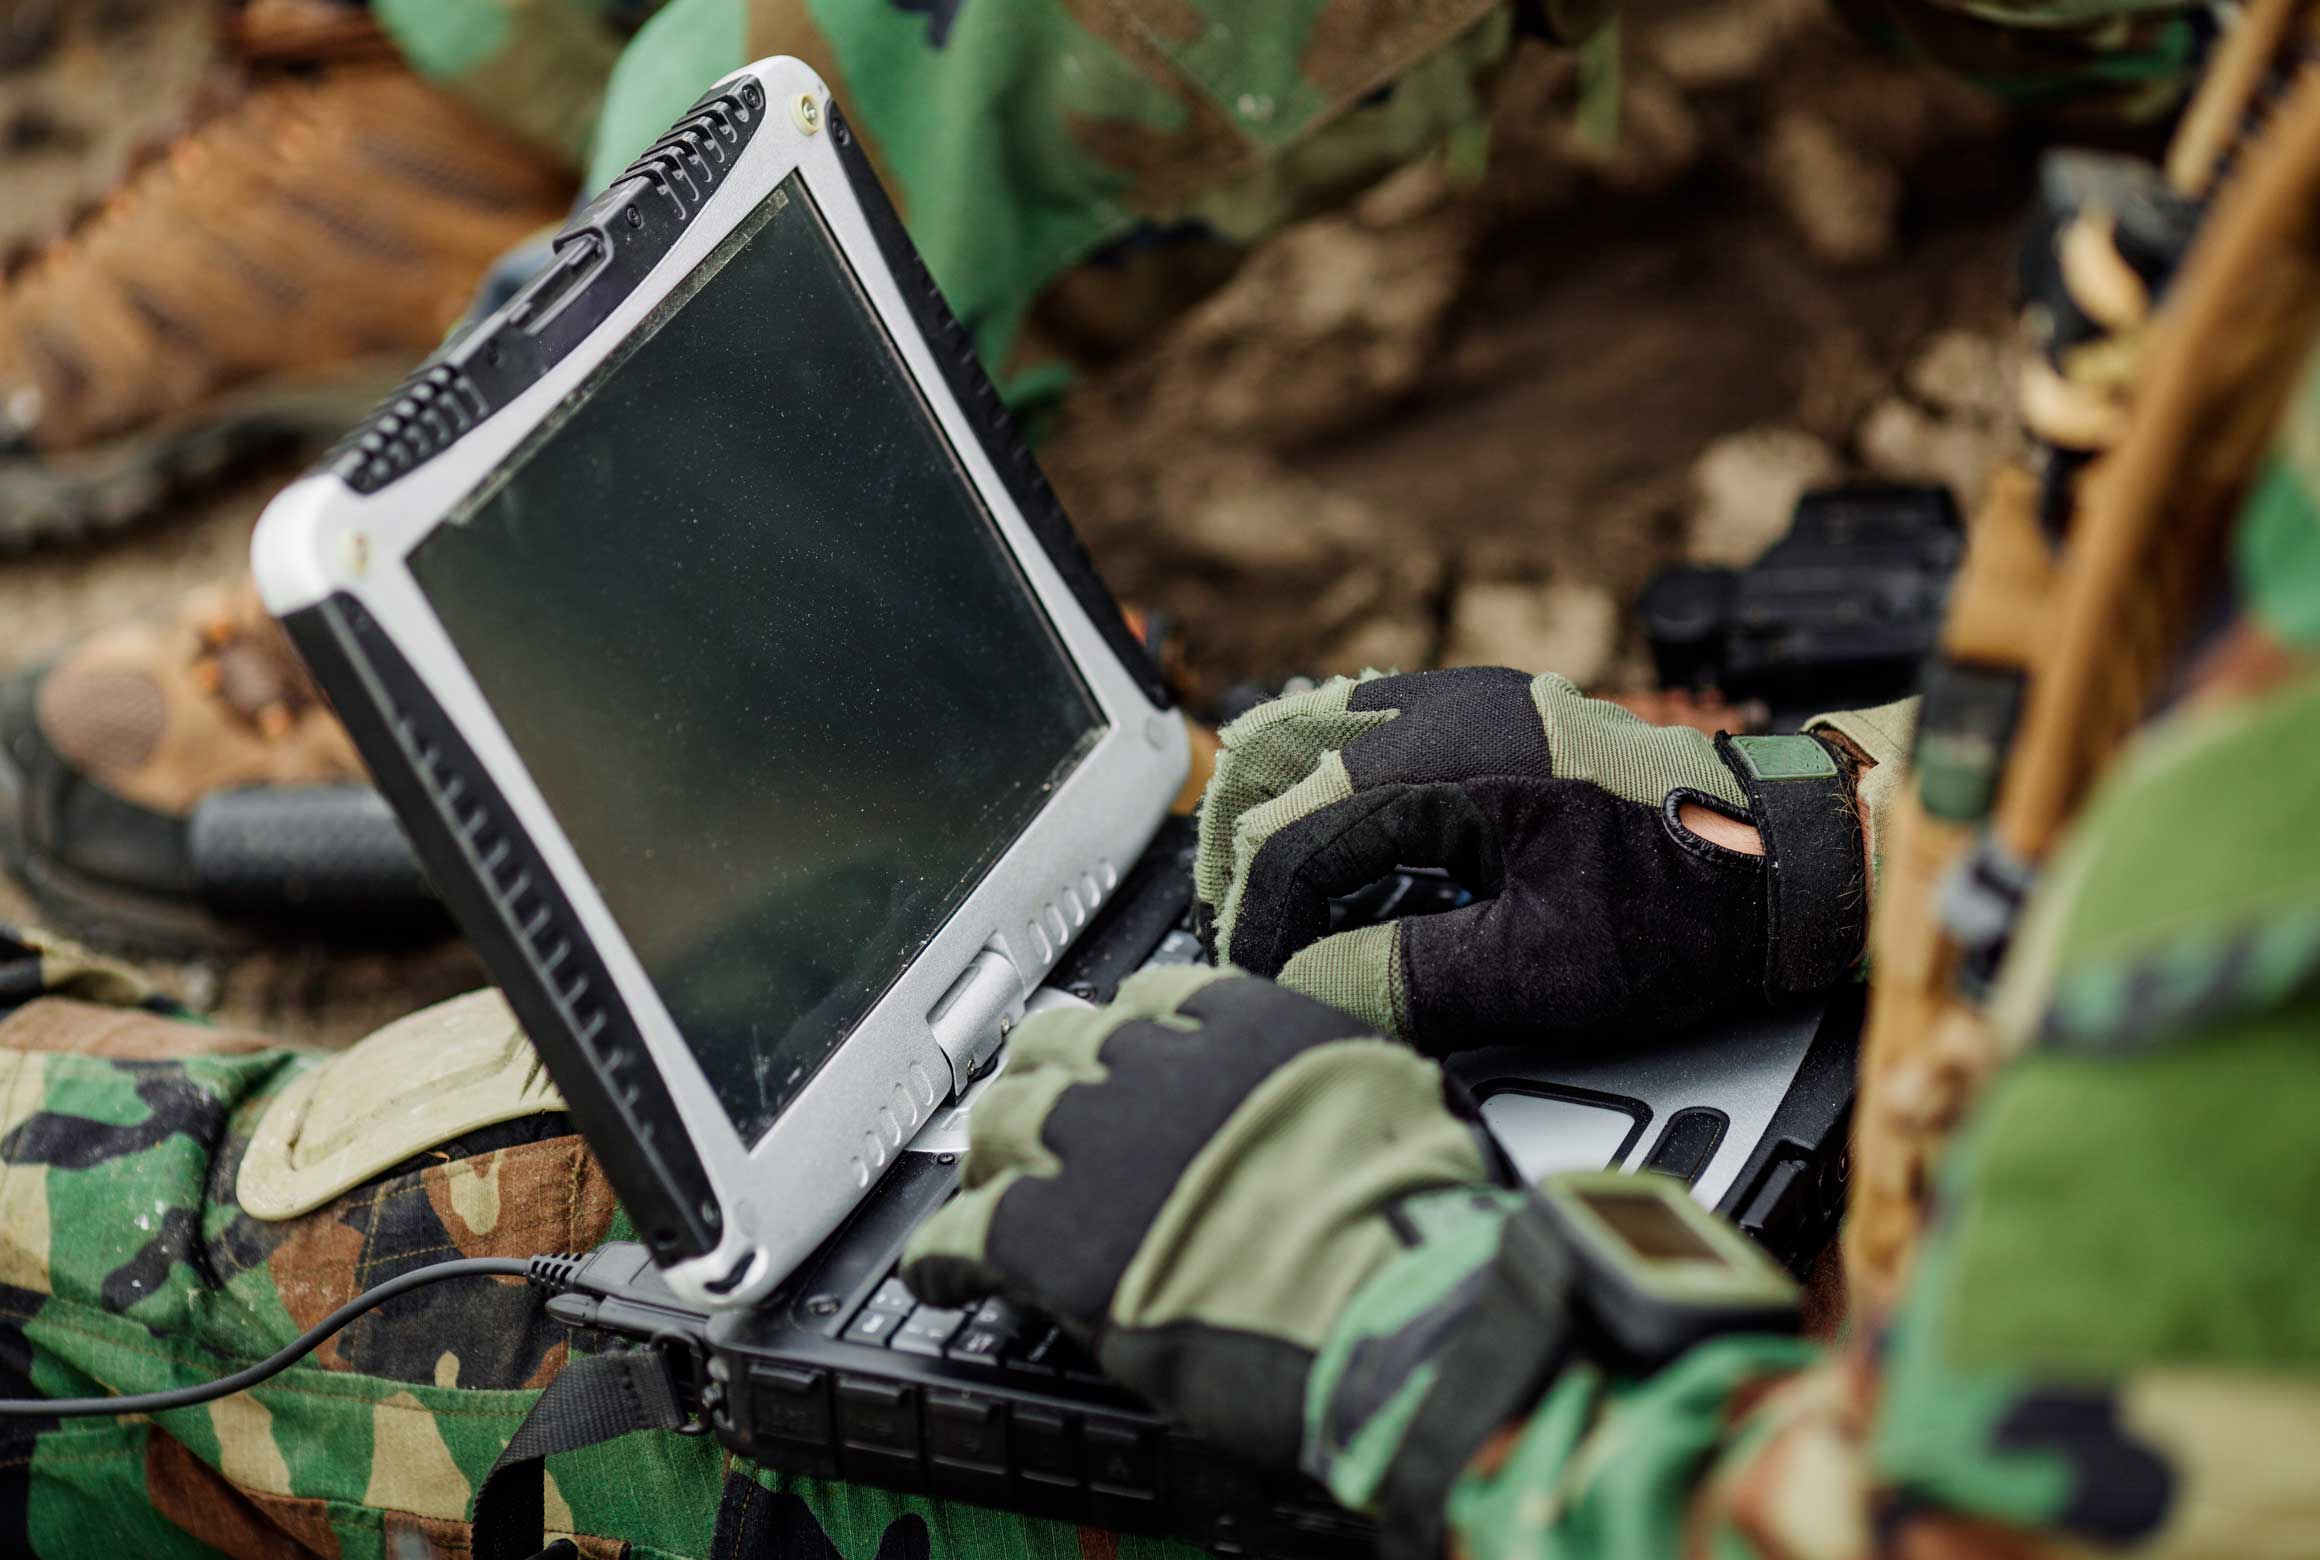 rugged laptop used by military